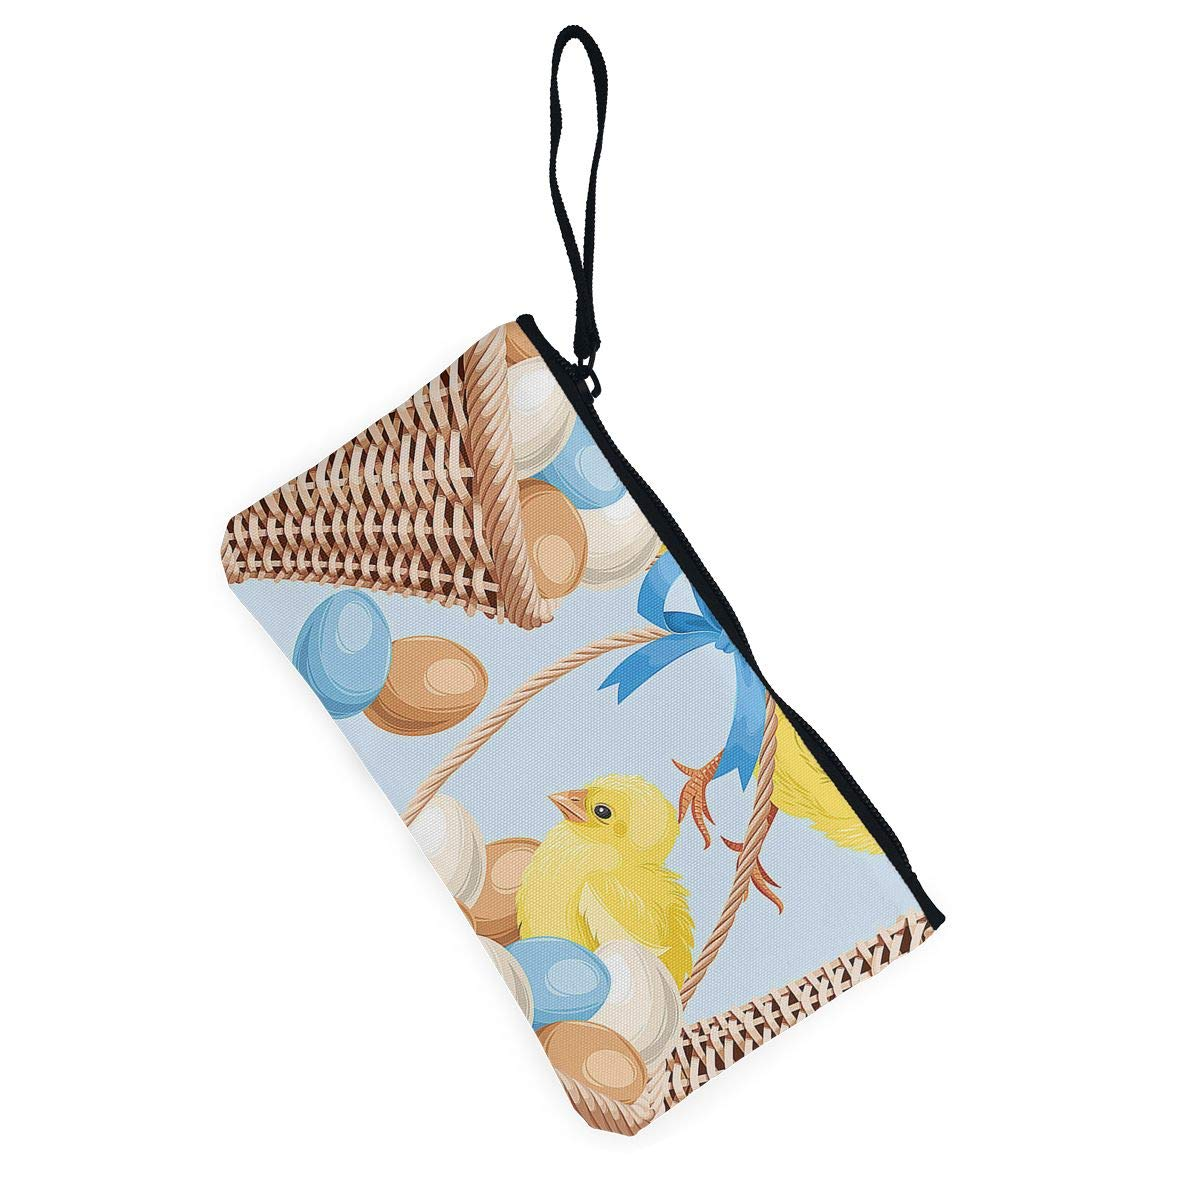 Maple Memories Easter Basket Chicken Eggs Portable Canvas Coin Purse Change Purse Pouch Mini Wallet Gifts For Women Girls